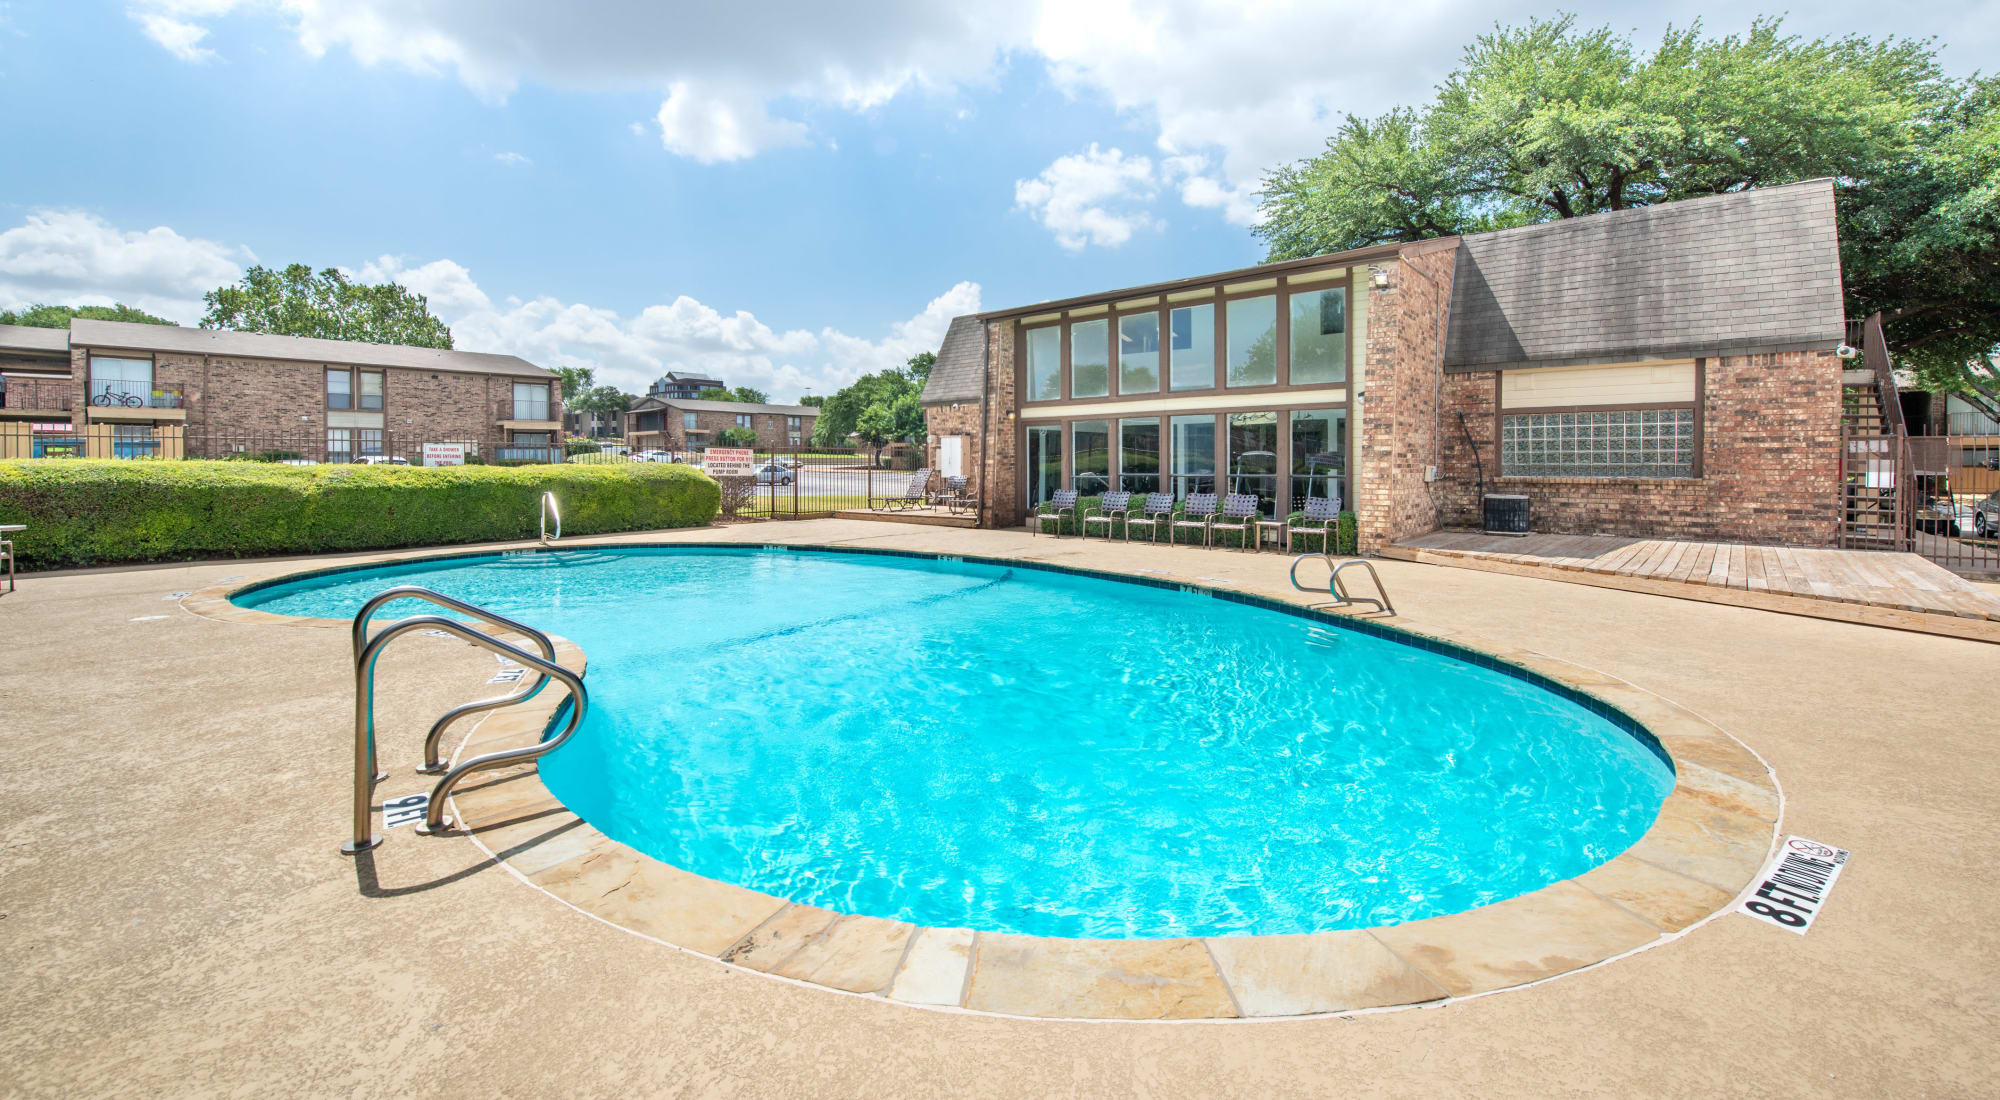 Contact us at 8500 Harwood Apartment Homes in North Richland Hills, Texas